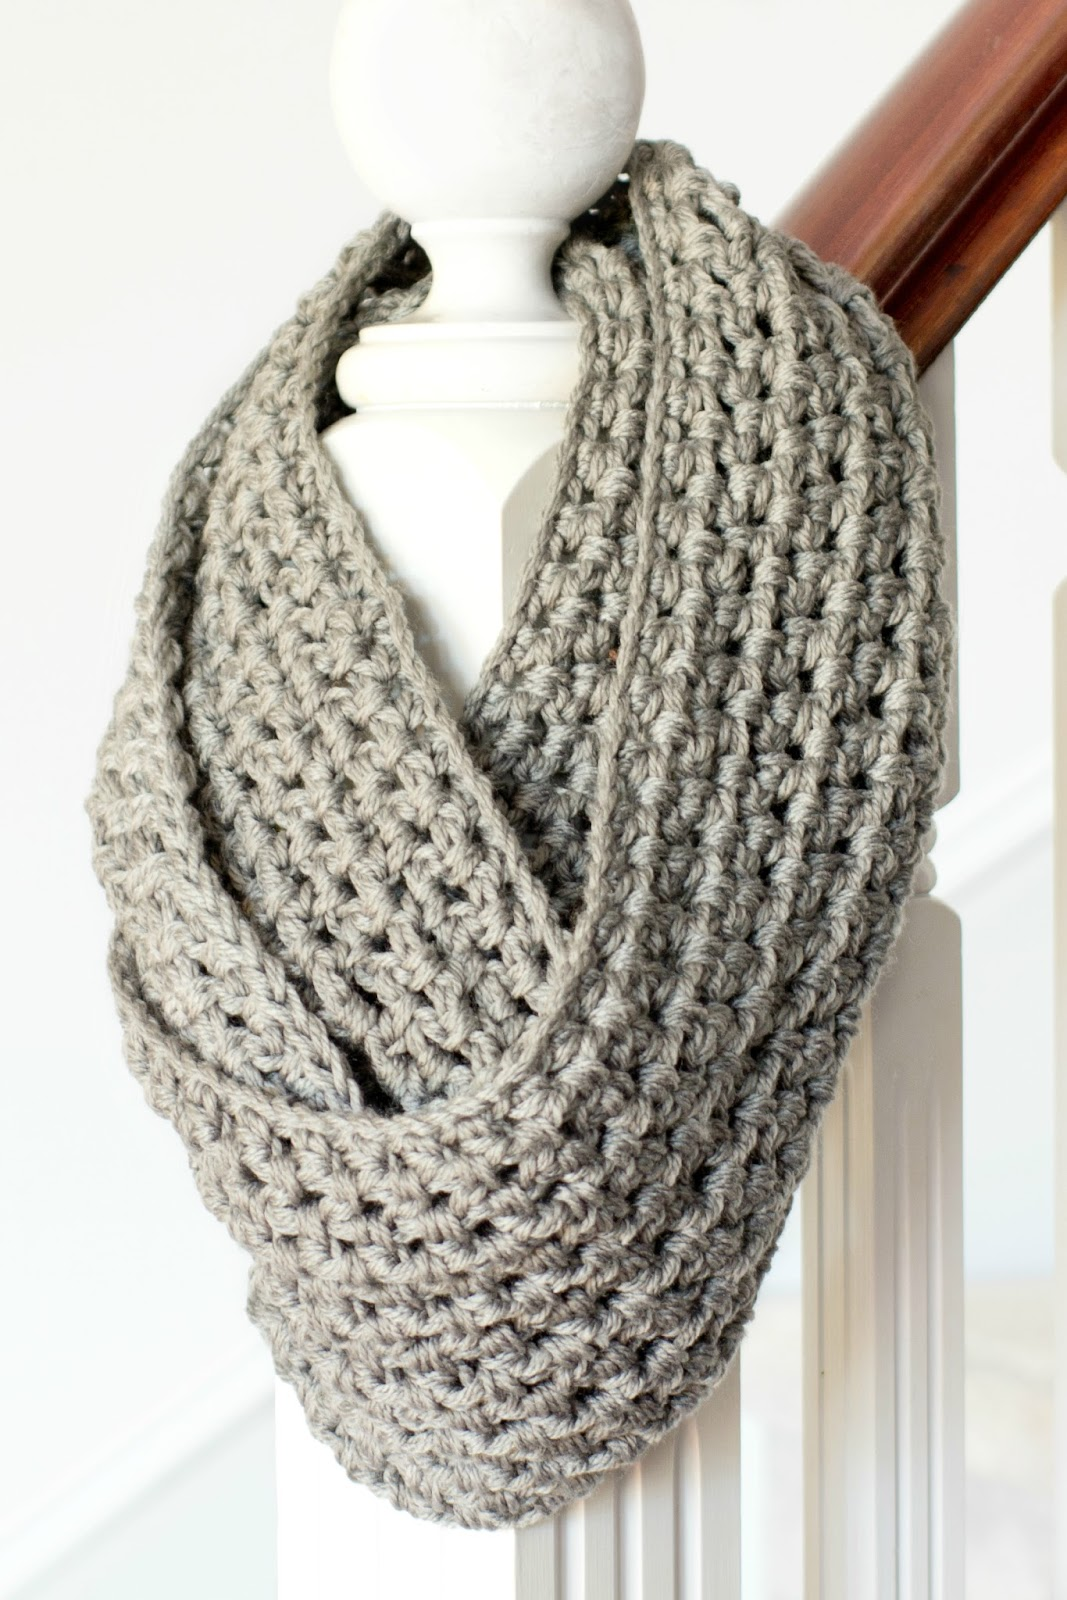 Quick Knit Infinity Scarf Pattern : 42 Fun and Cozy DIY Scarves Crafts to Make